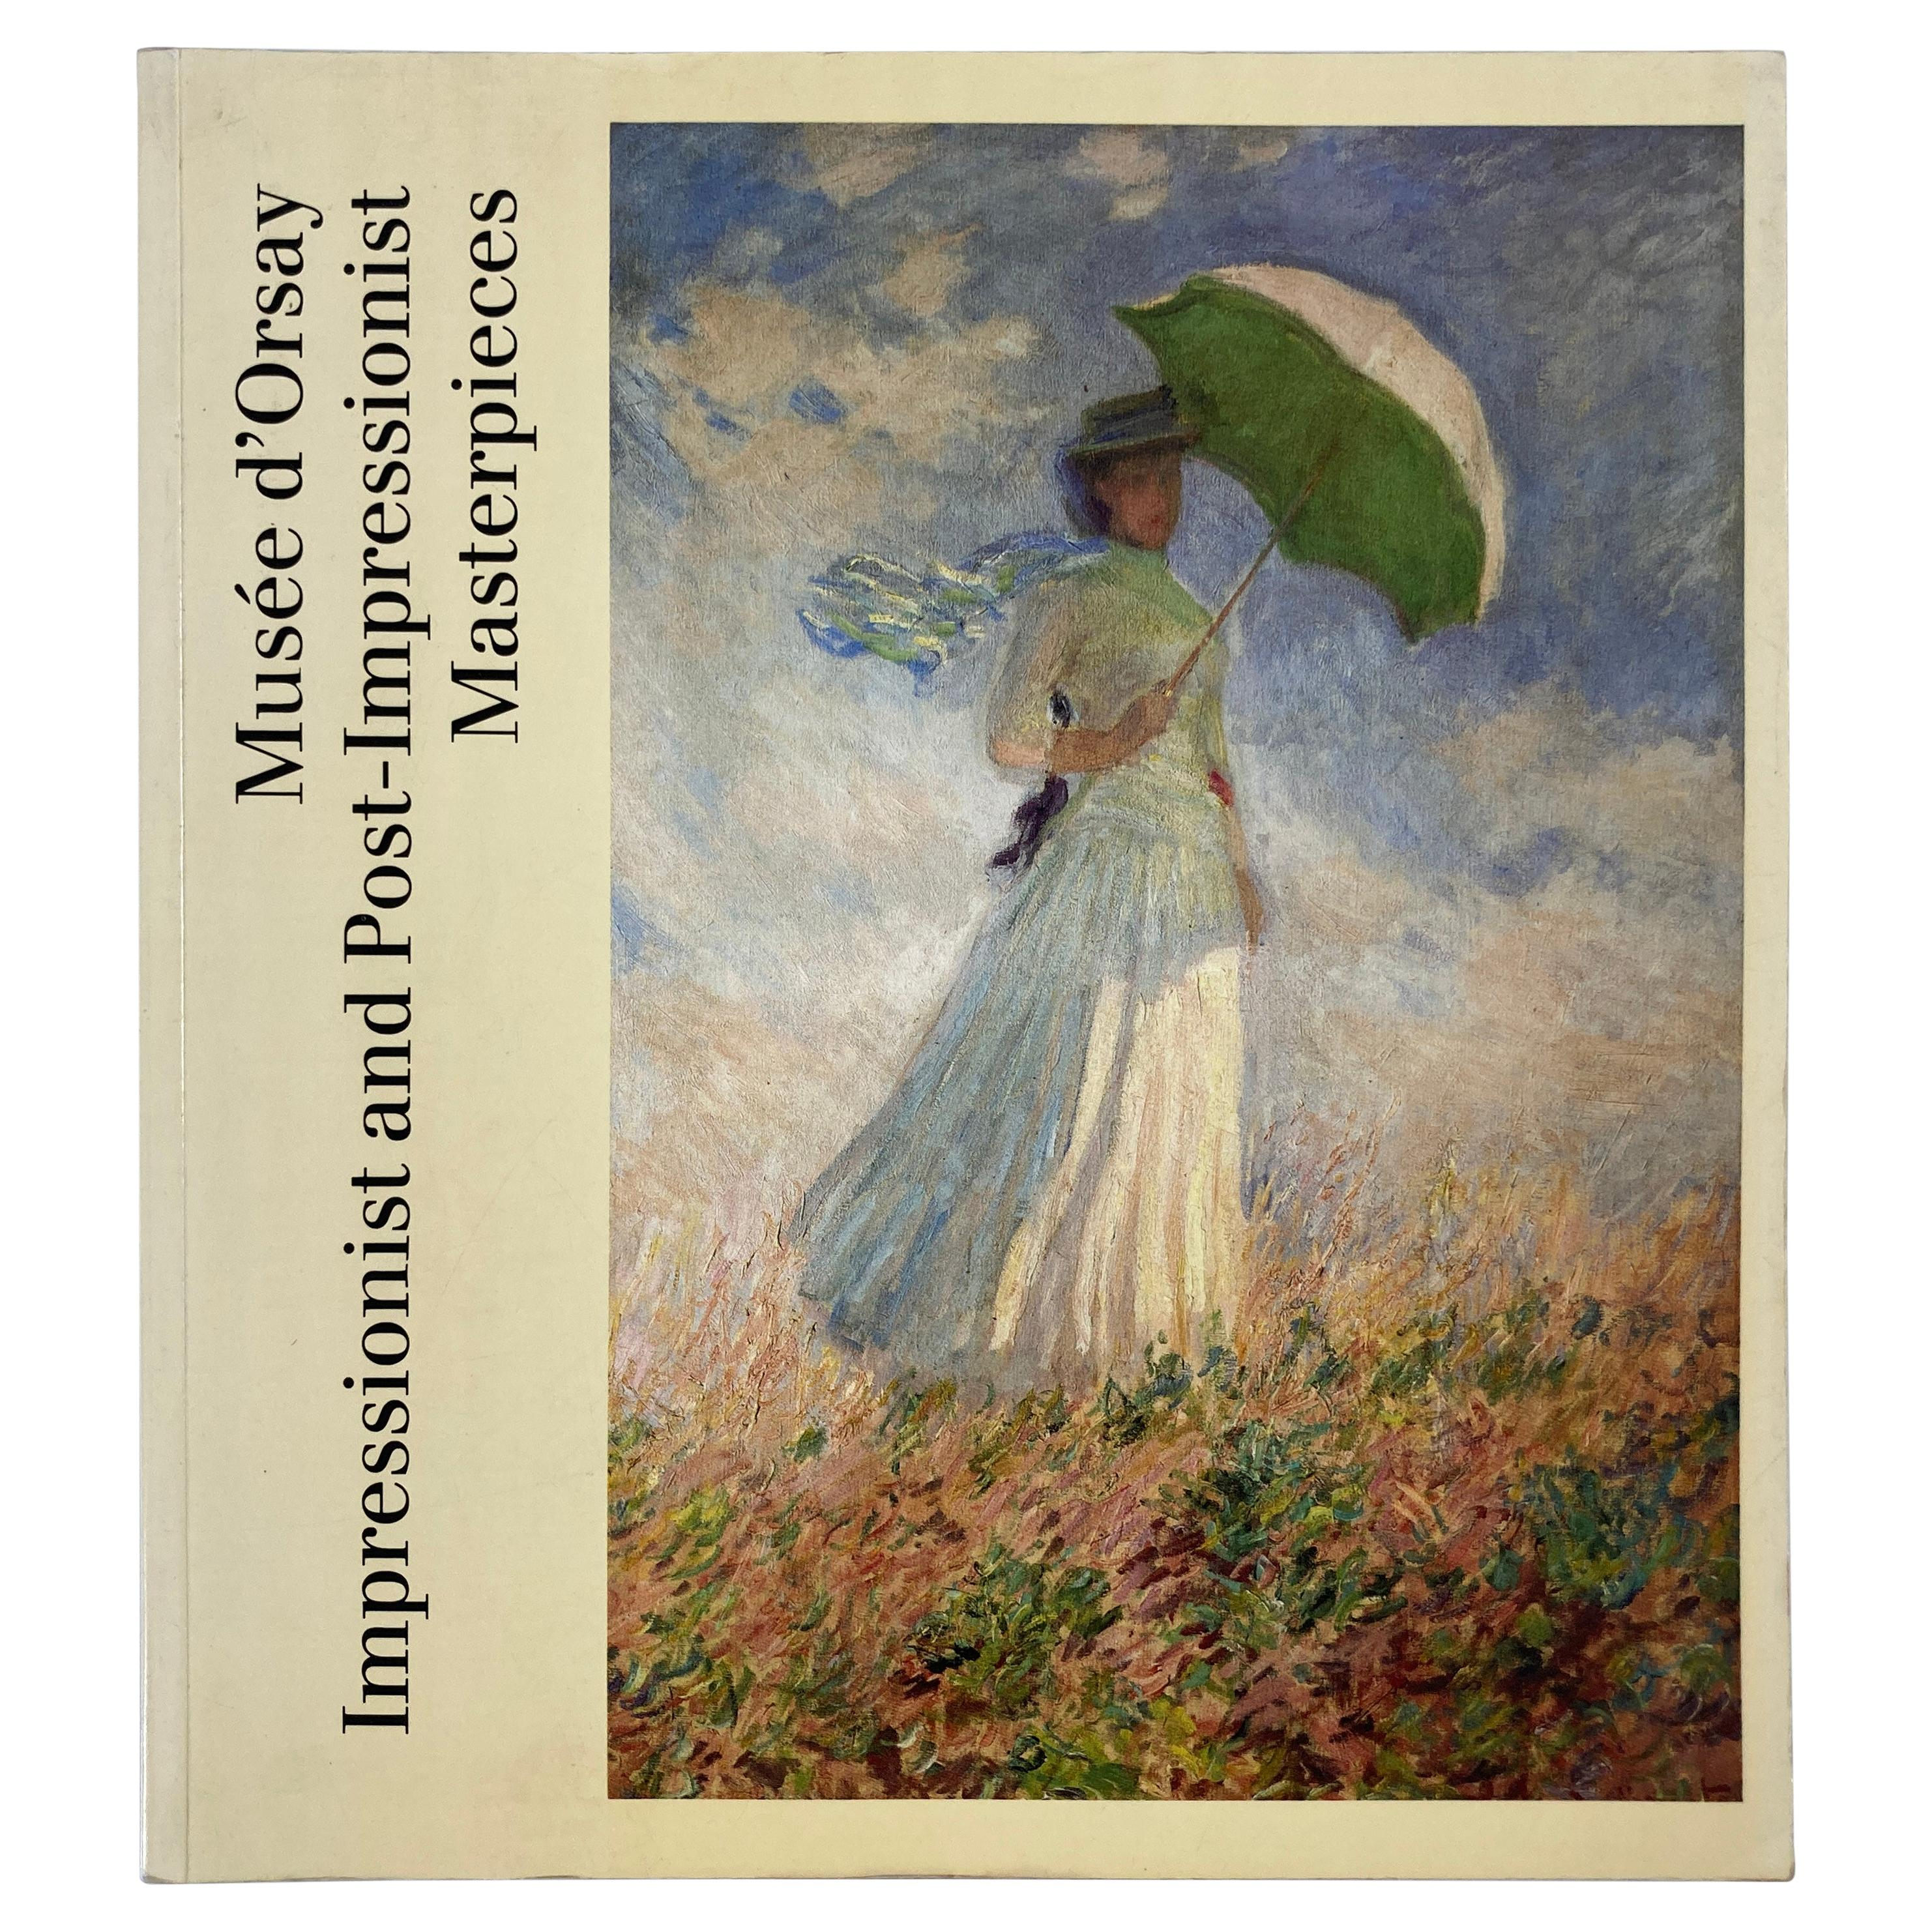 Impressionist and Post-Impressionist Masterpieces at the Musee d'Orsay Book